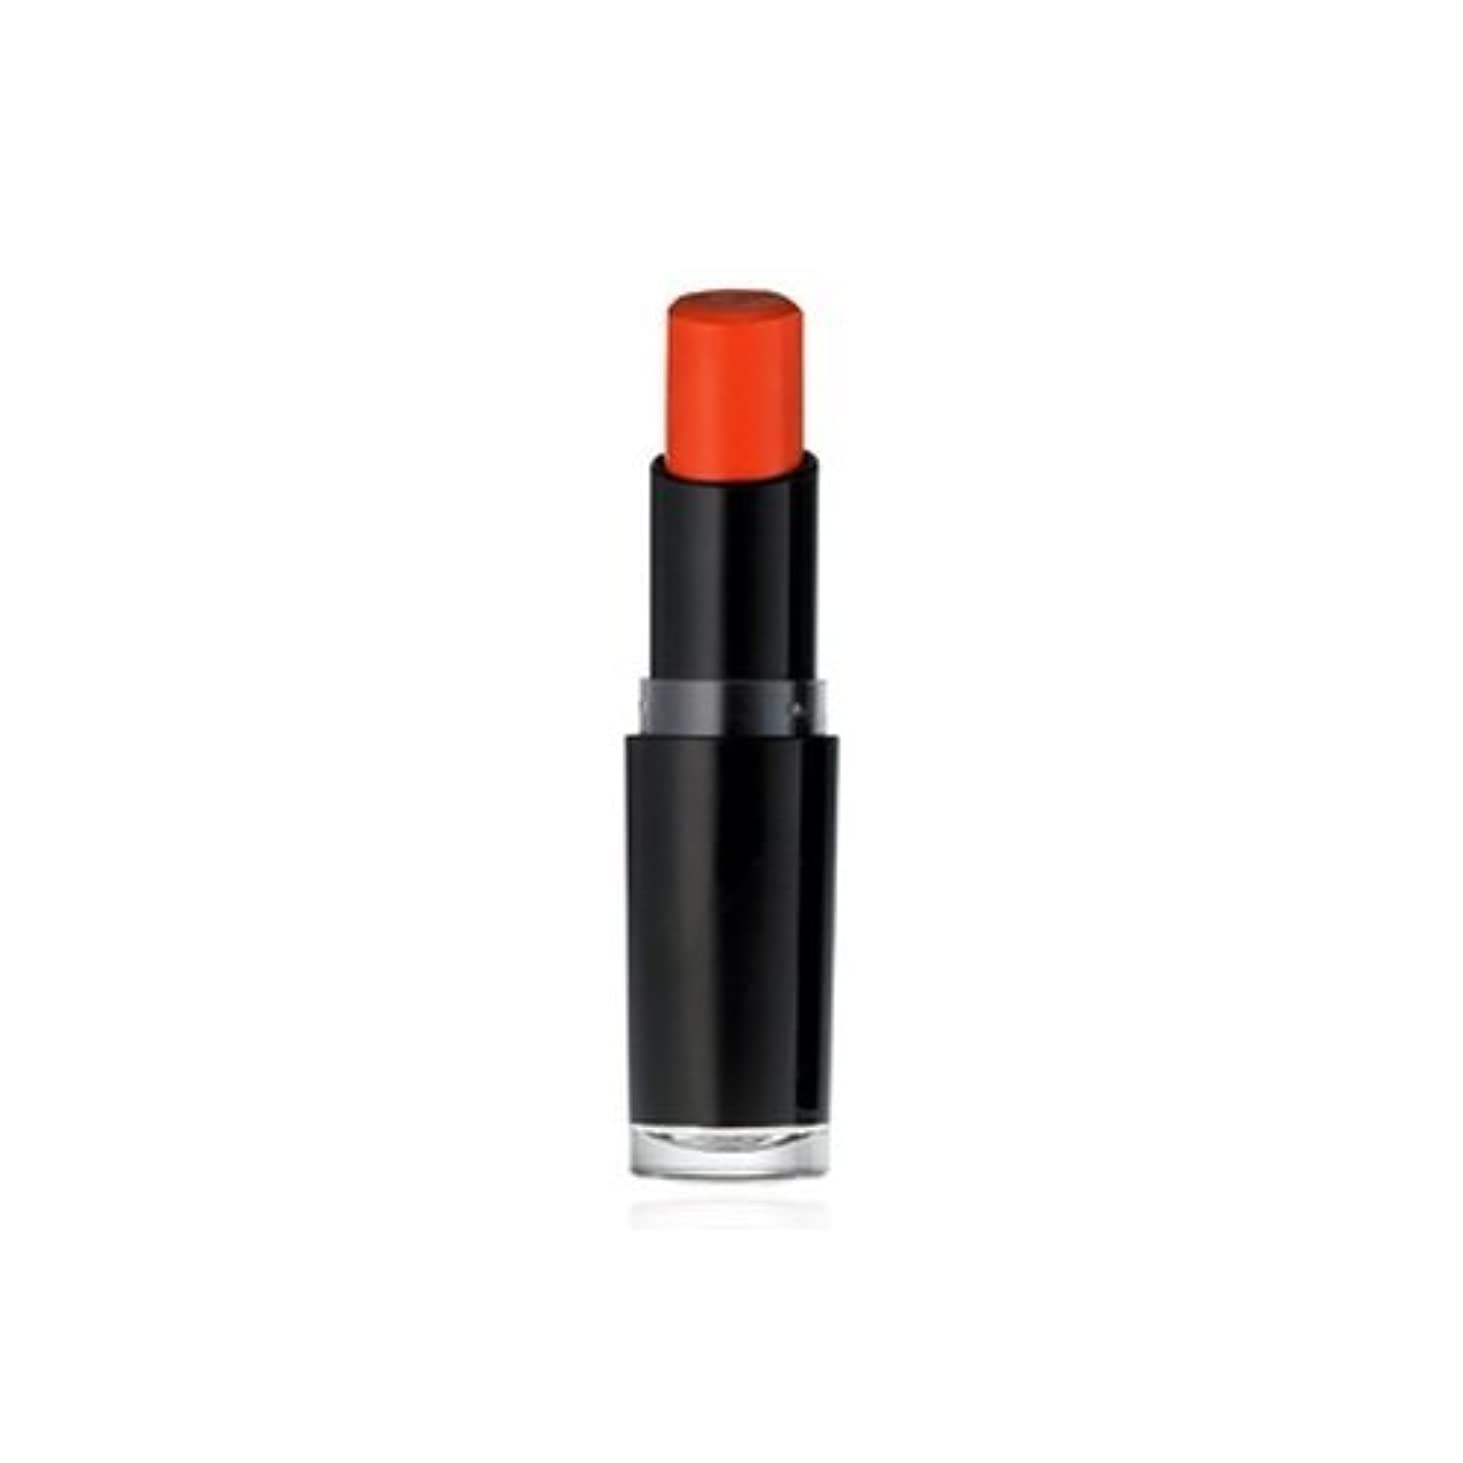 地平線シェルター責任(6 Pack) WET N WILD Mega Last Matte Lip Cover - 24 Carrot Gold (並行輸入品)